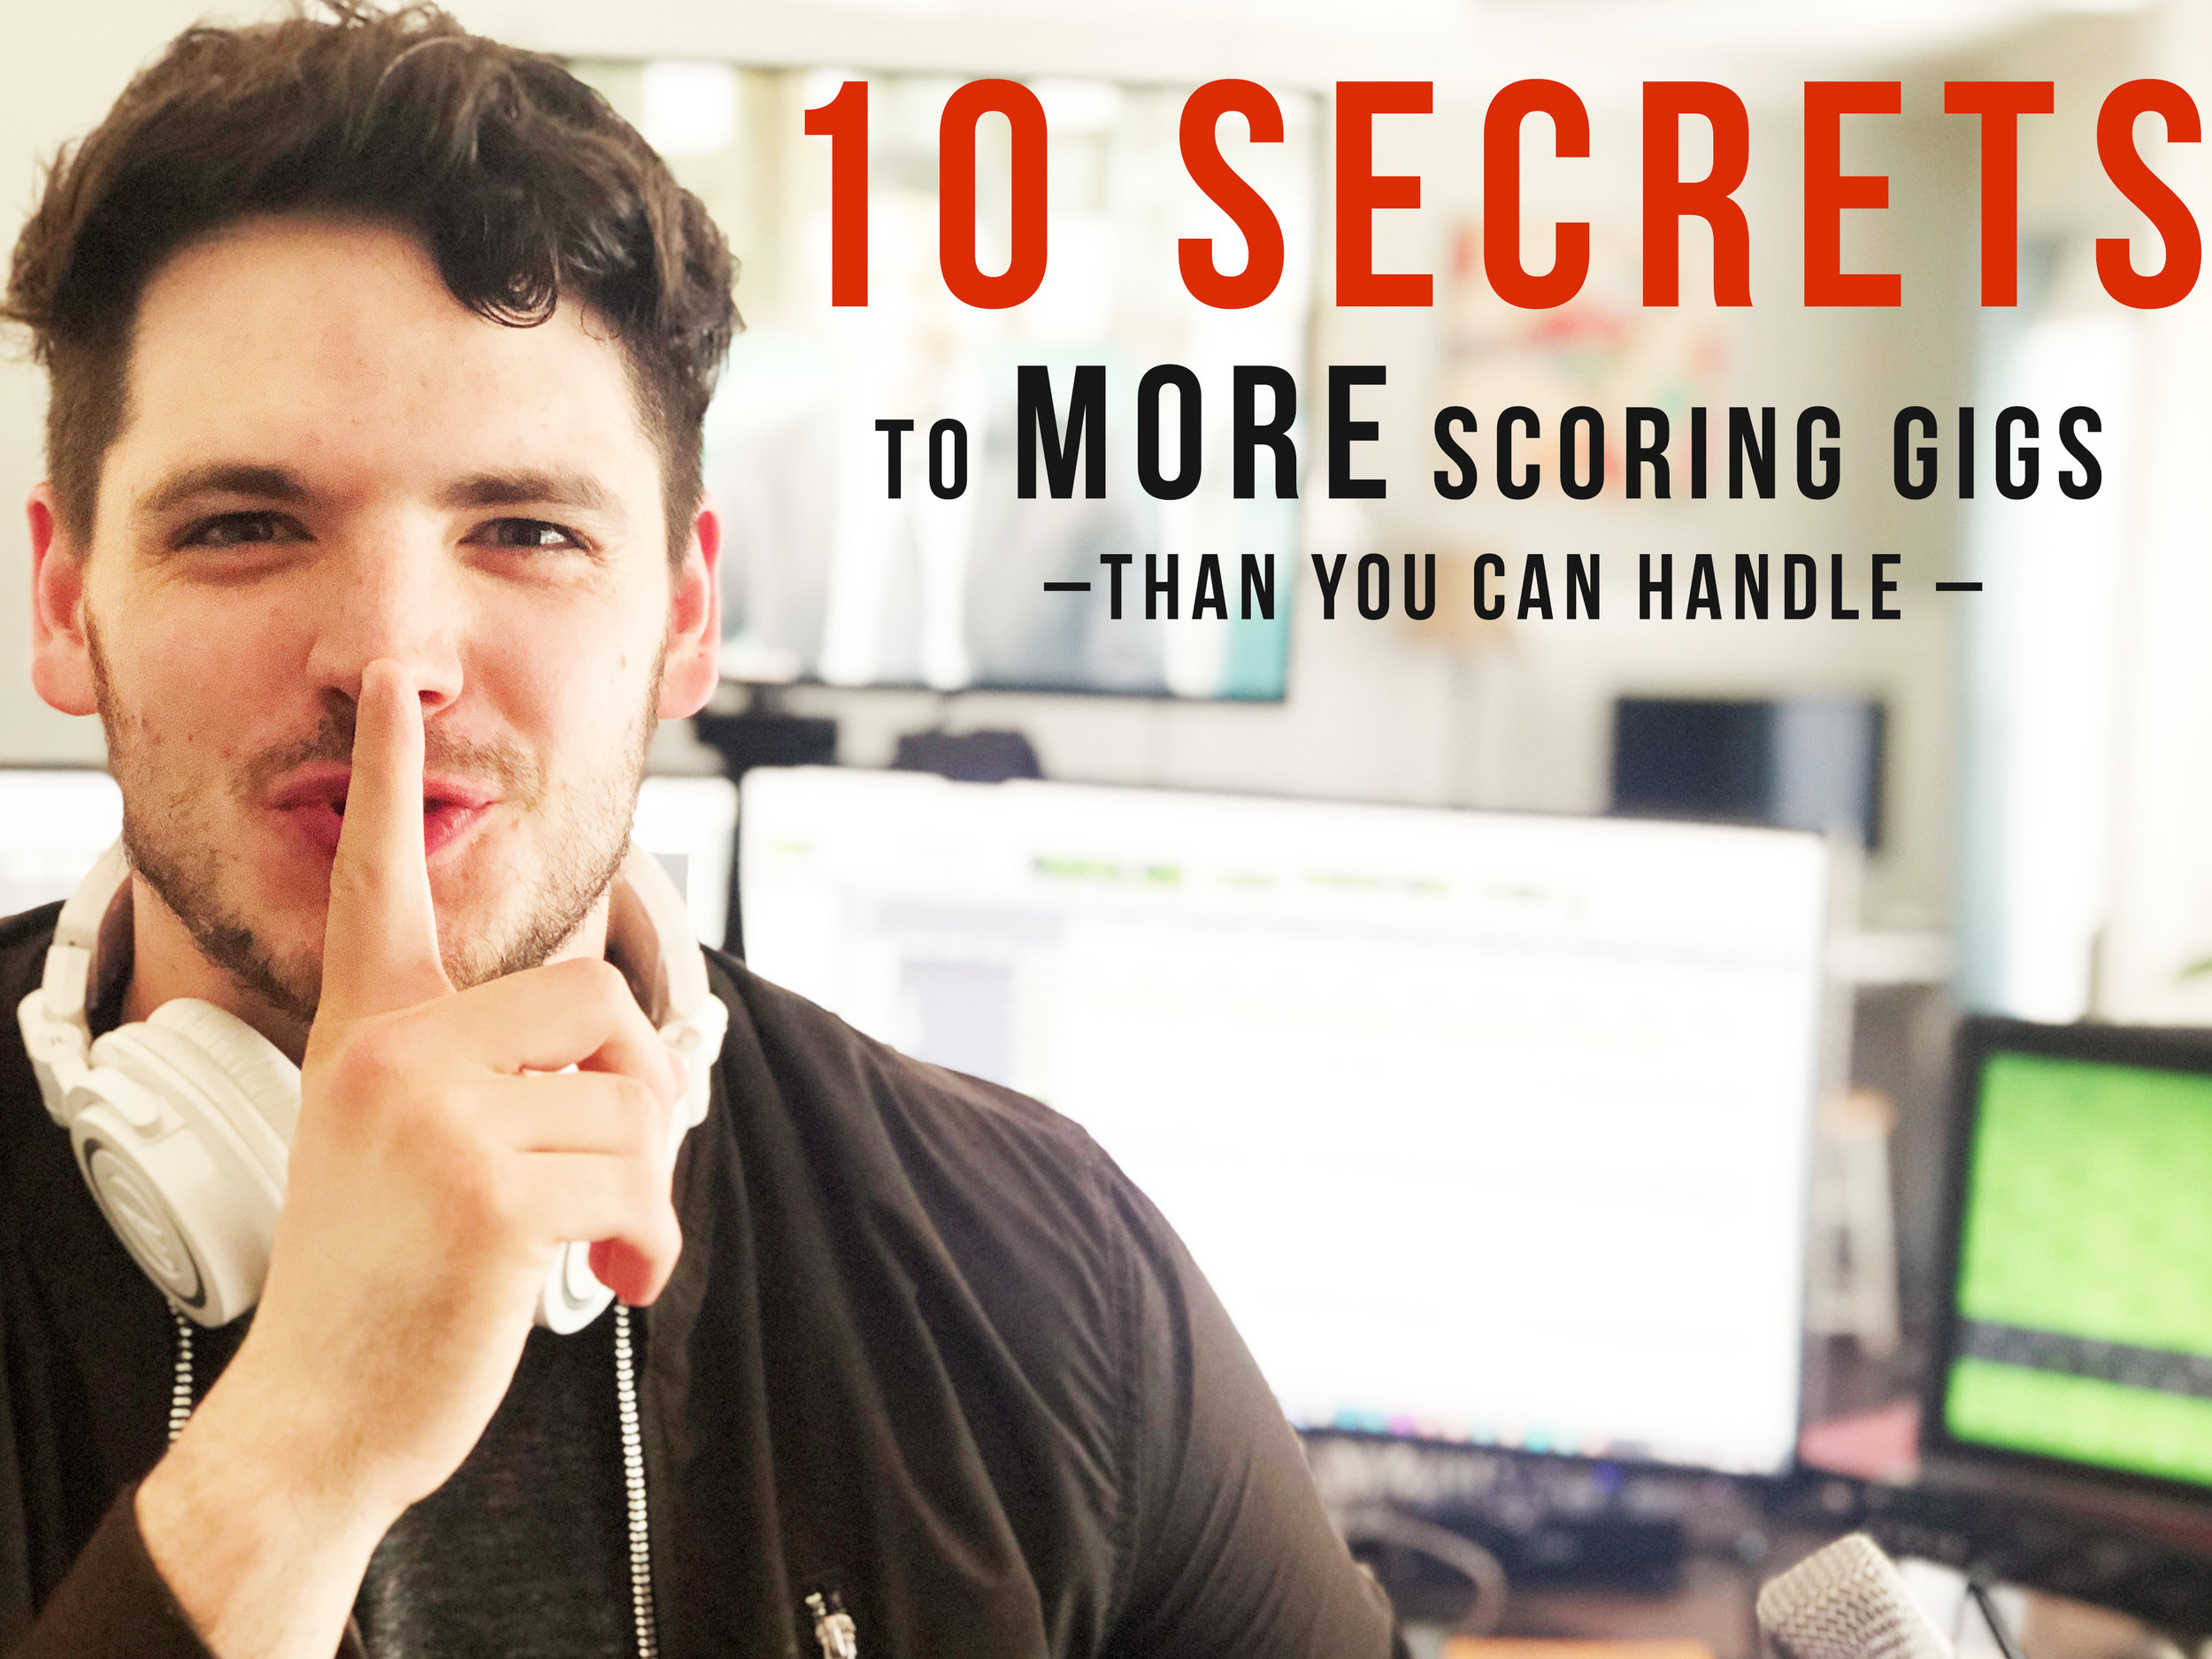 10 Secrets To More Scoring Gigs Than You Can Handle COURSE THUMB.jpg